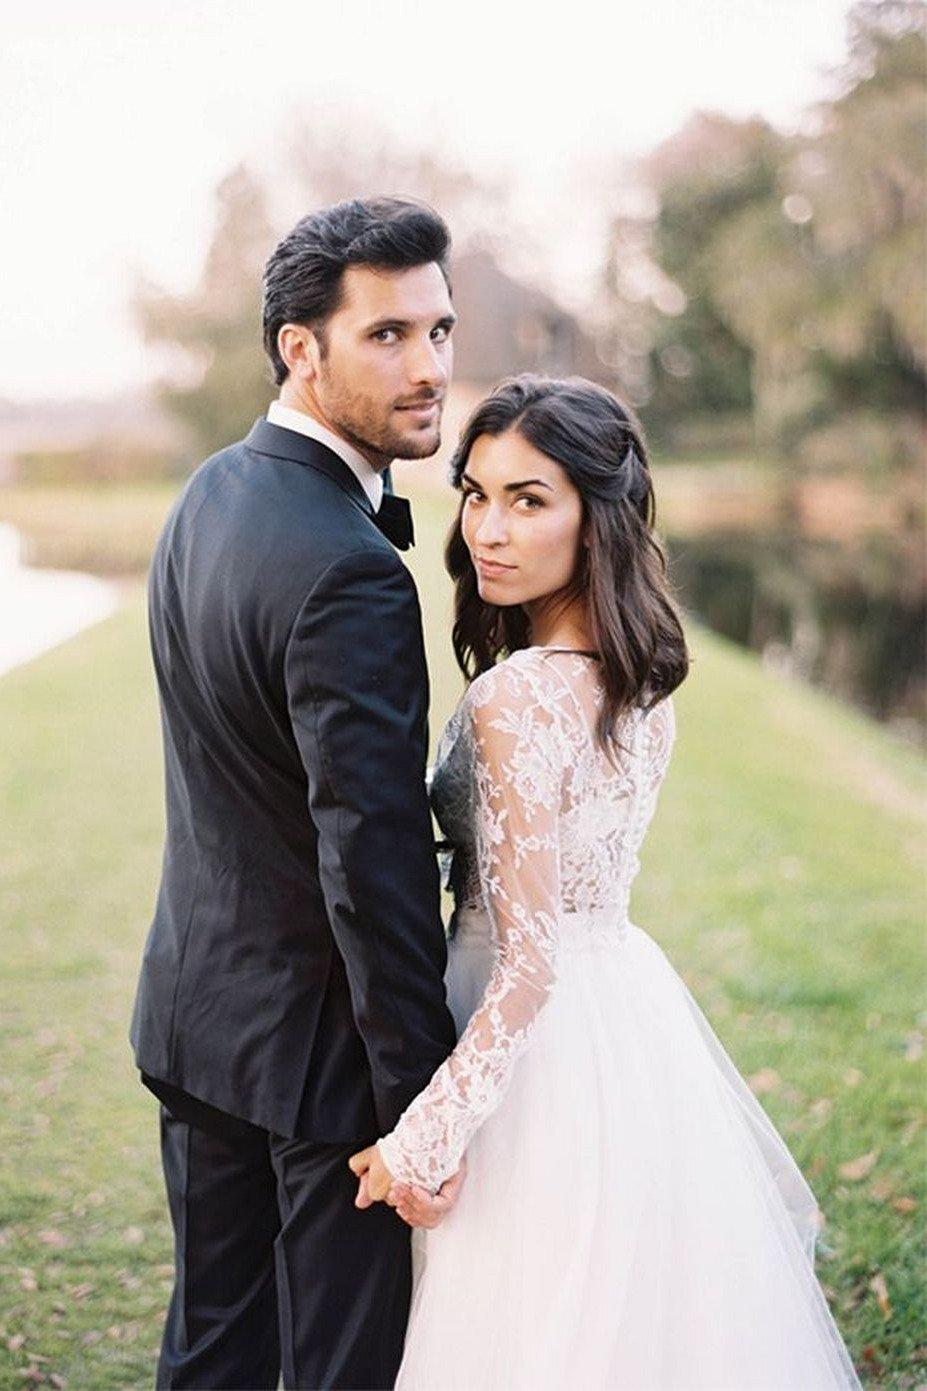 Boho 2 Piece Wedding Dress with Lace Top and Tulle Skirt - Mr. & Mrs. Tomorrow